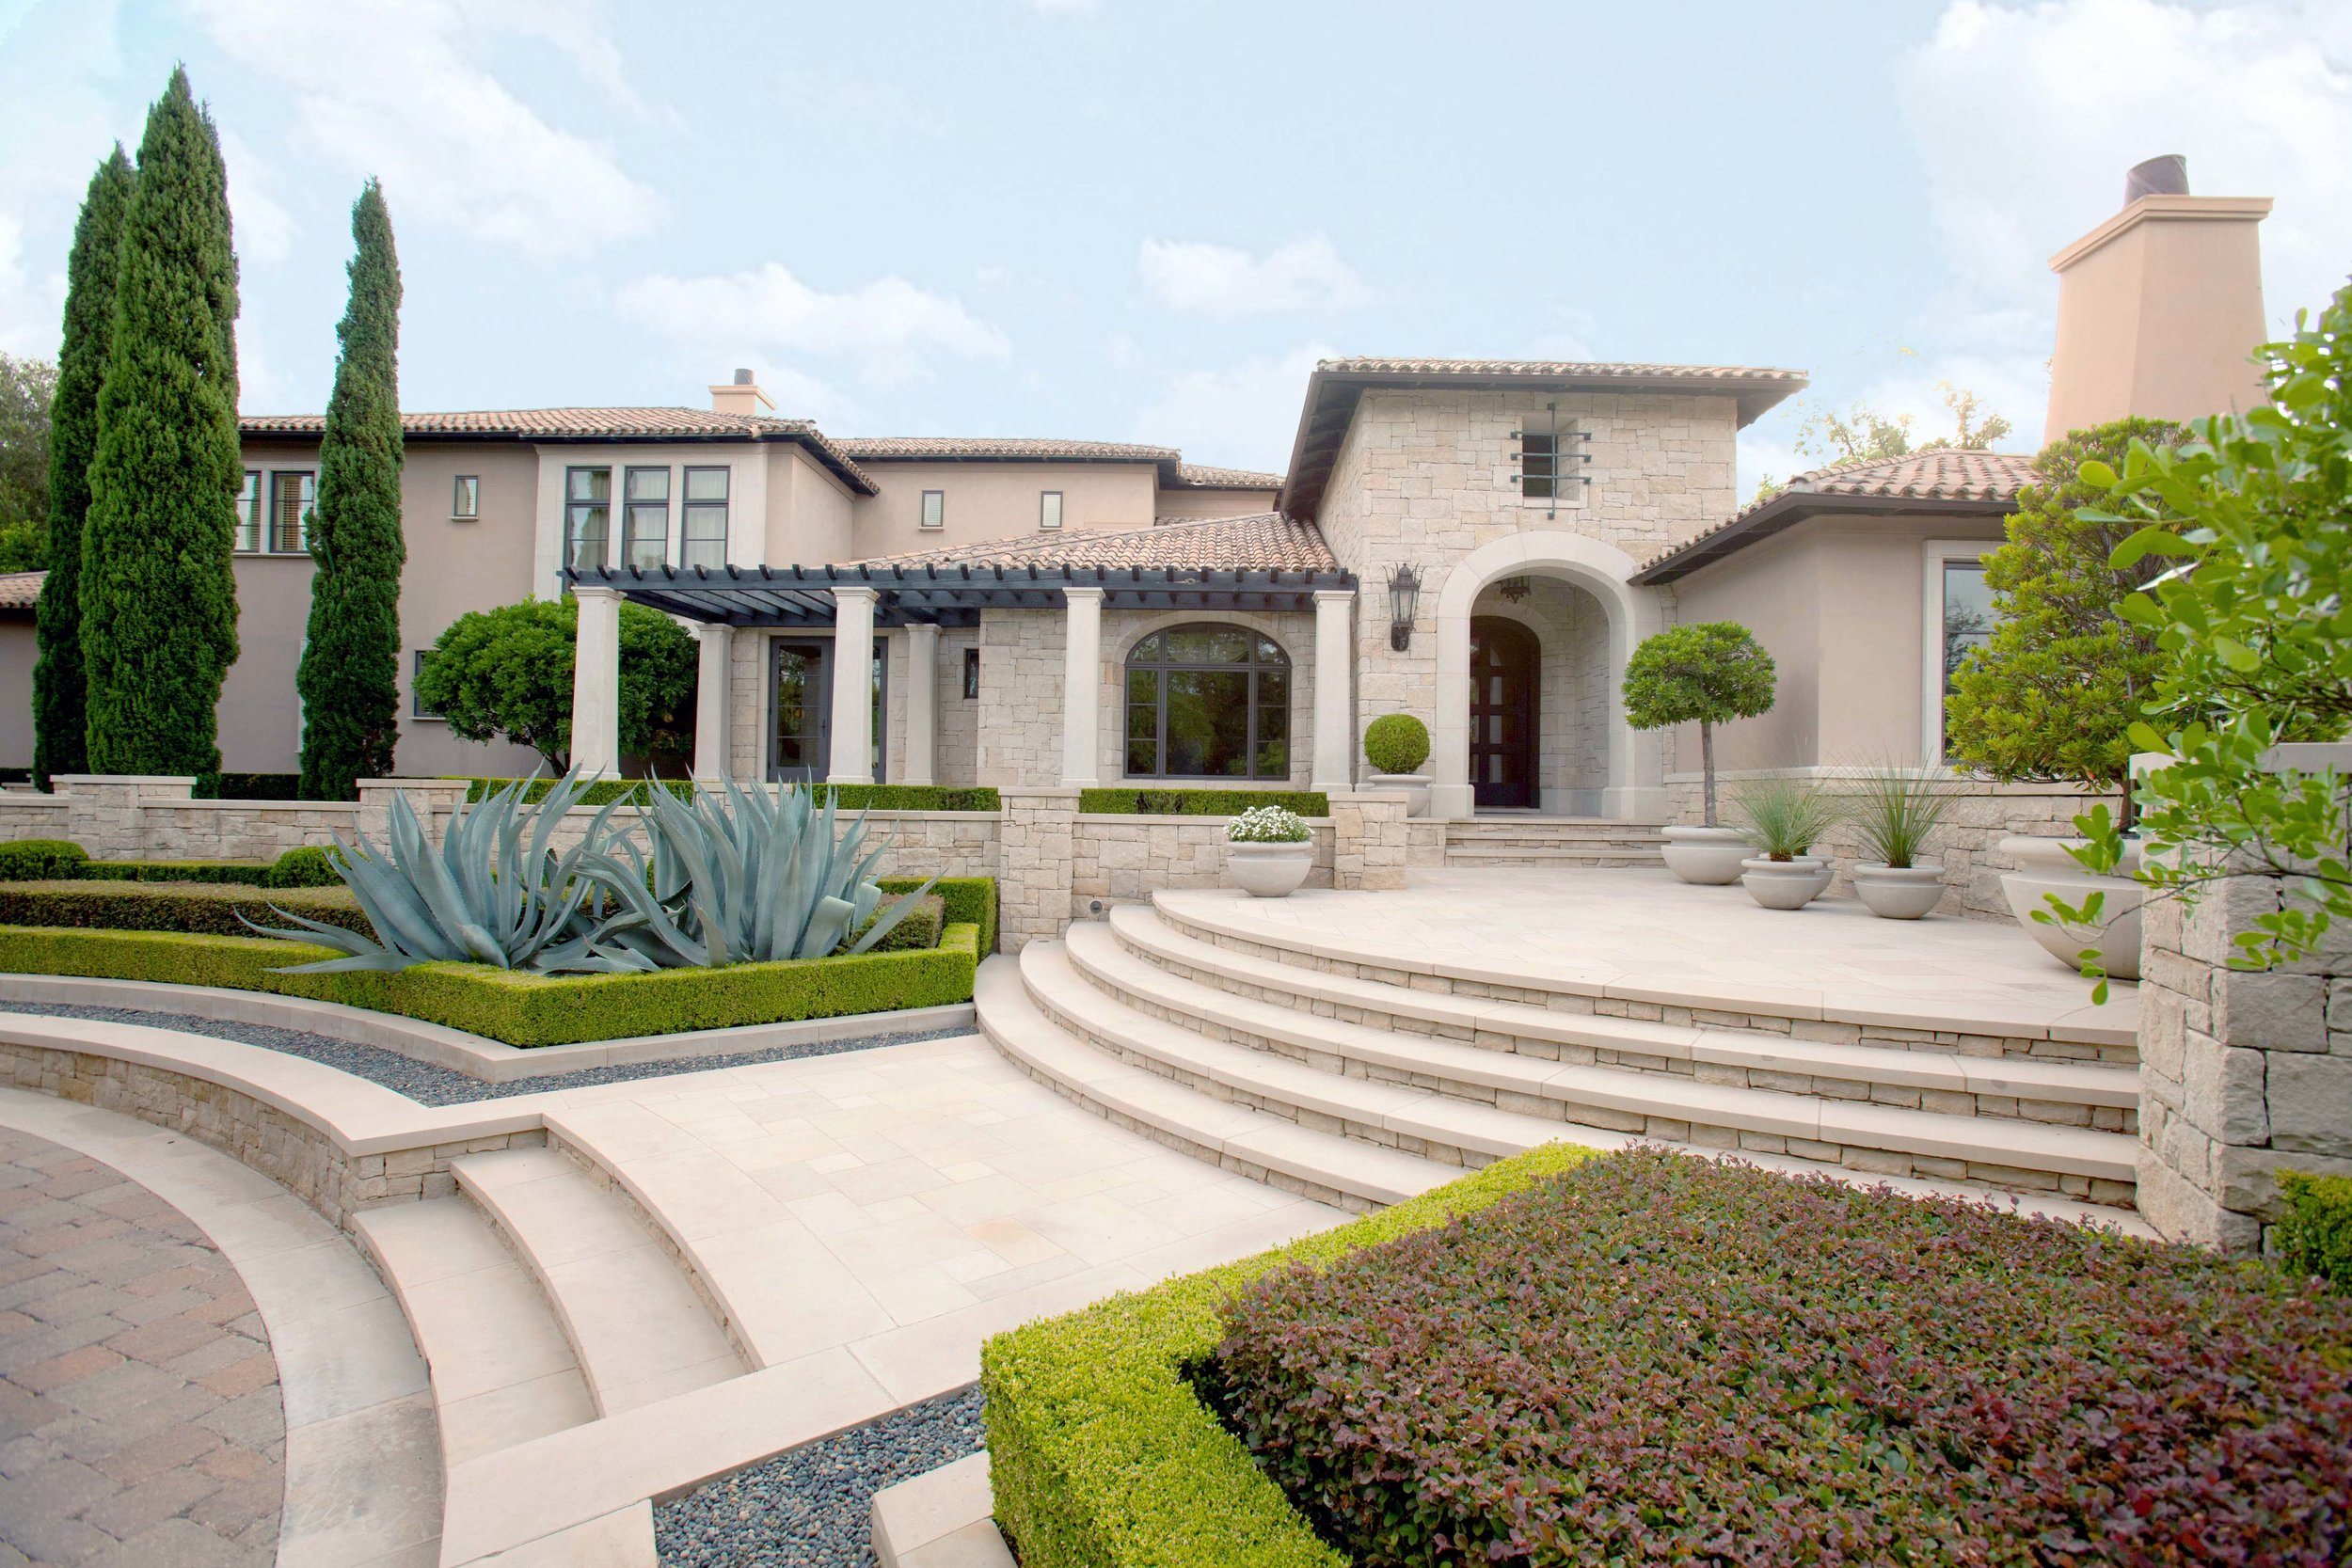 Foothills Residence